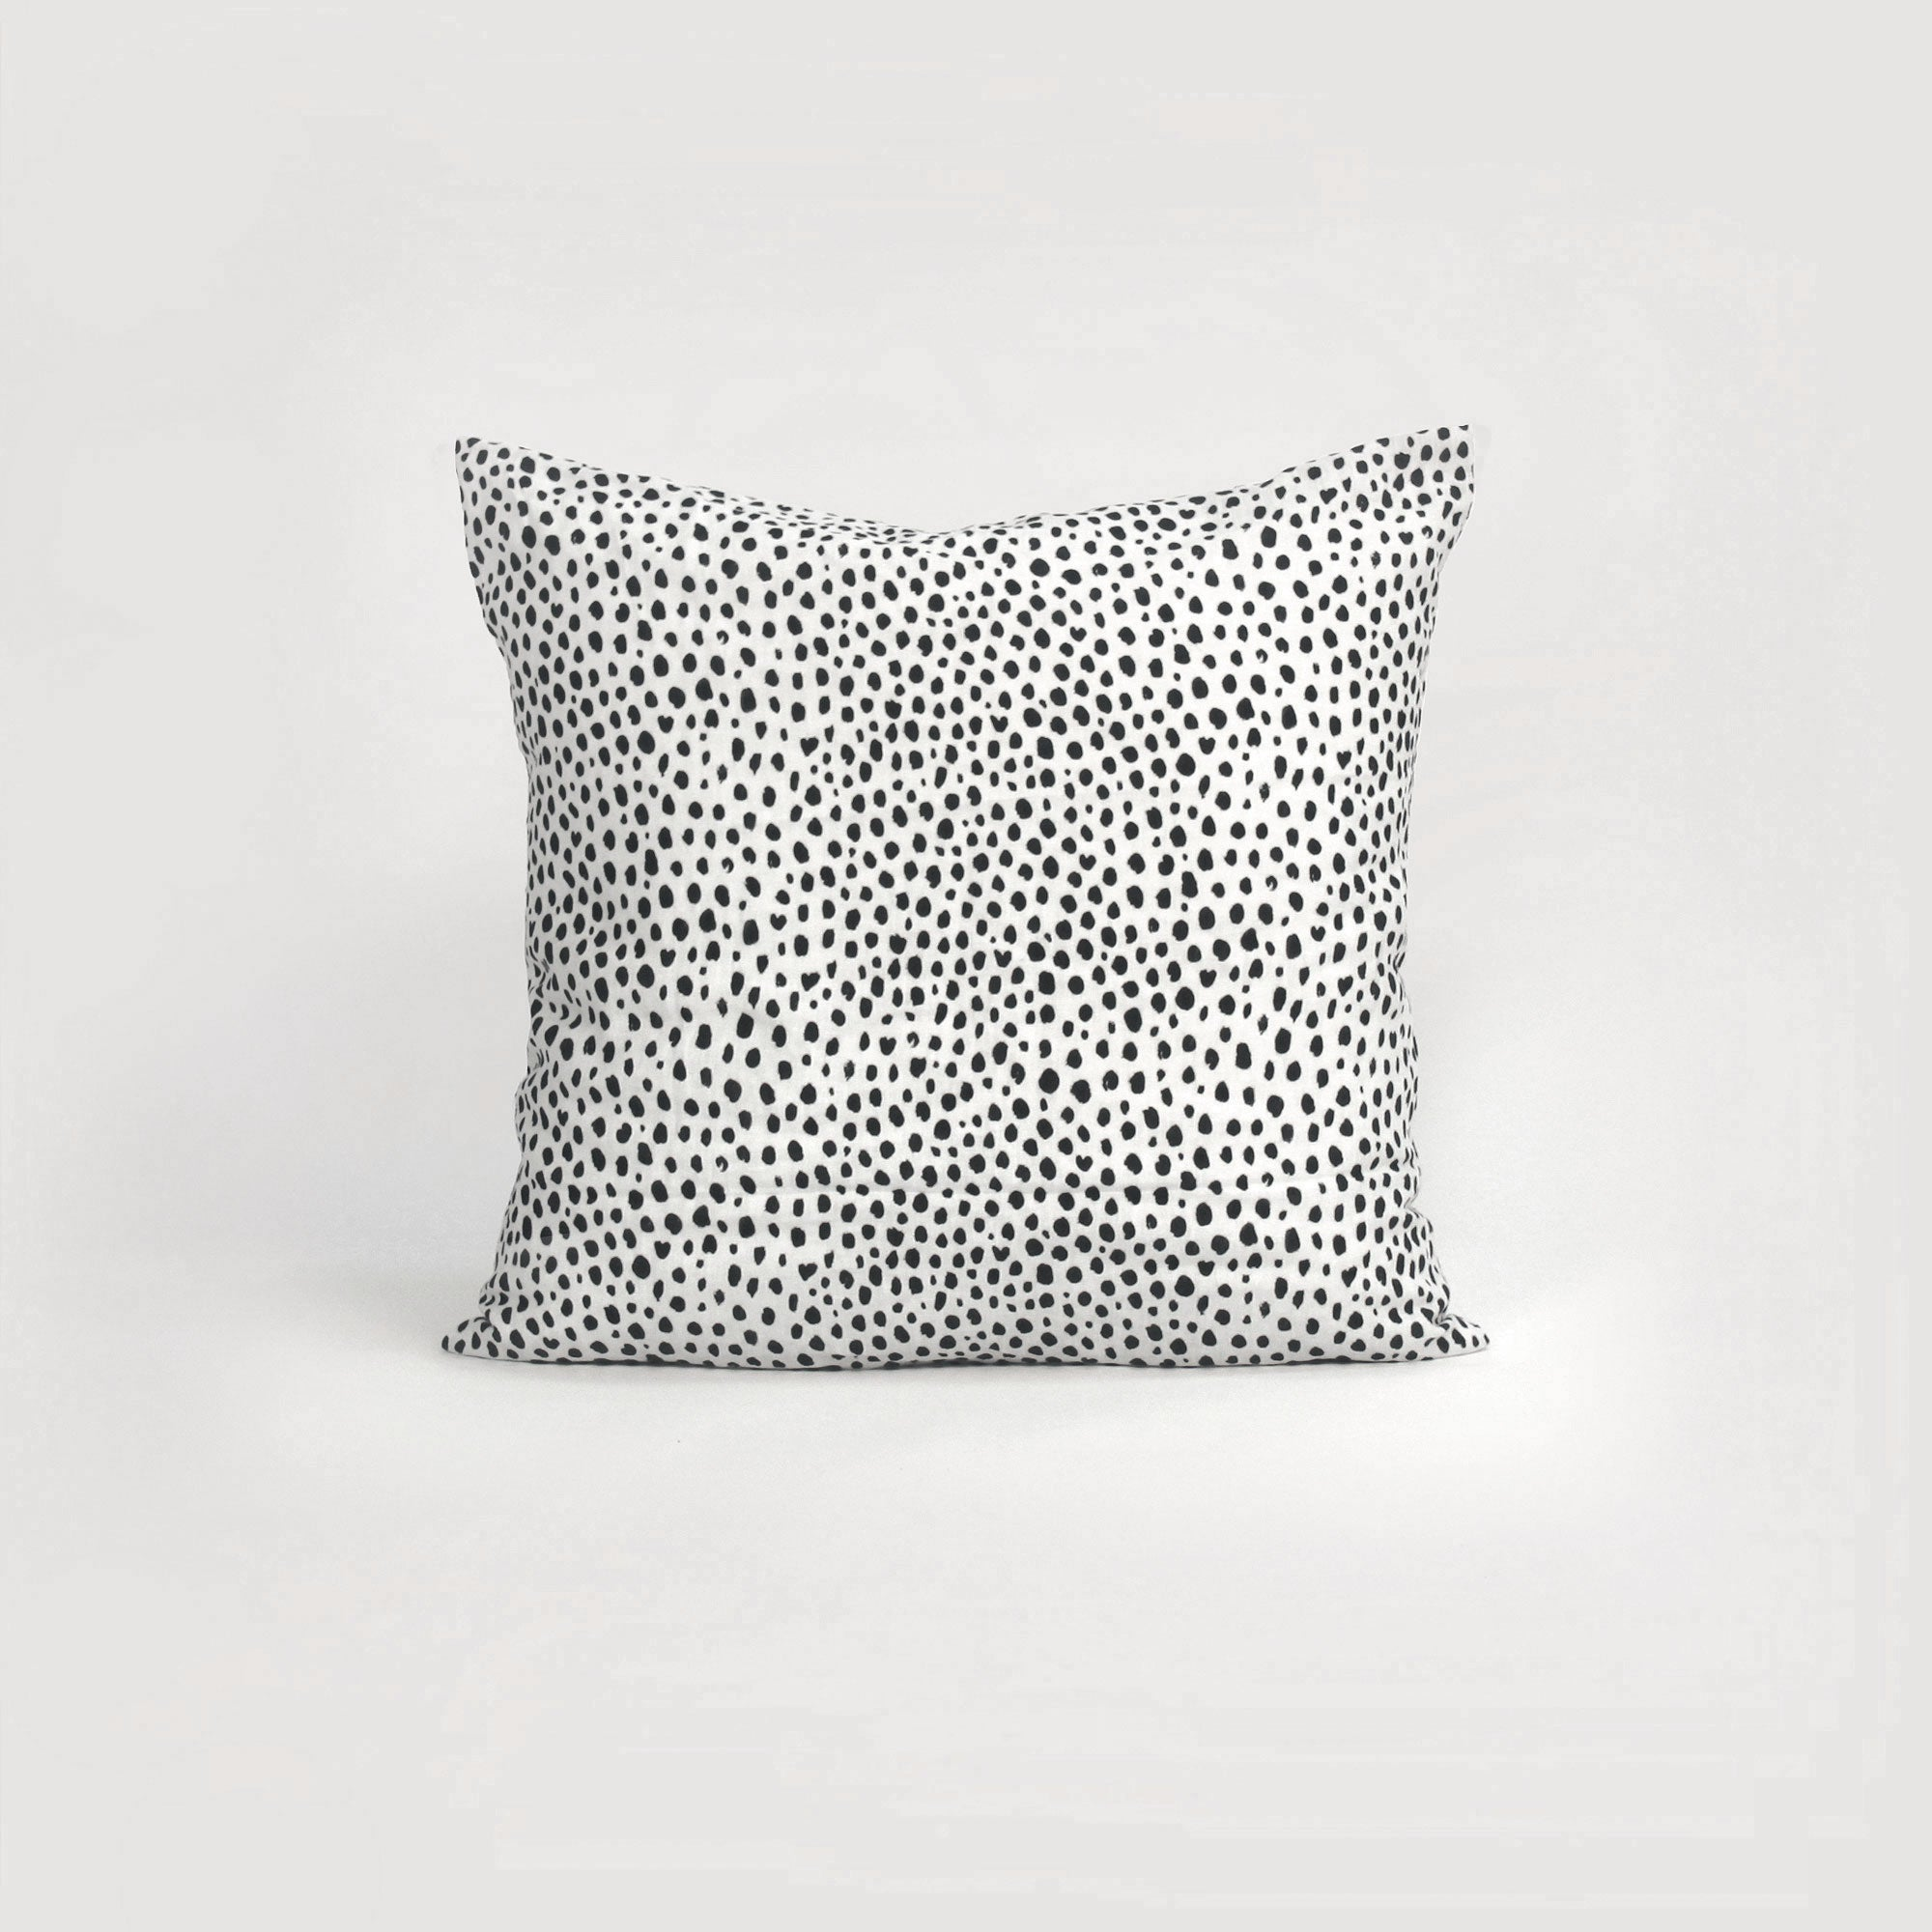 black and white animal print pillowcase. Spot European cushion in natural linen by homebody nz